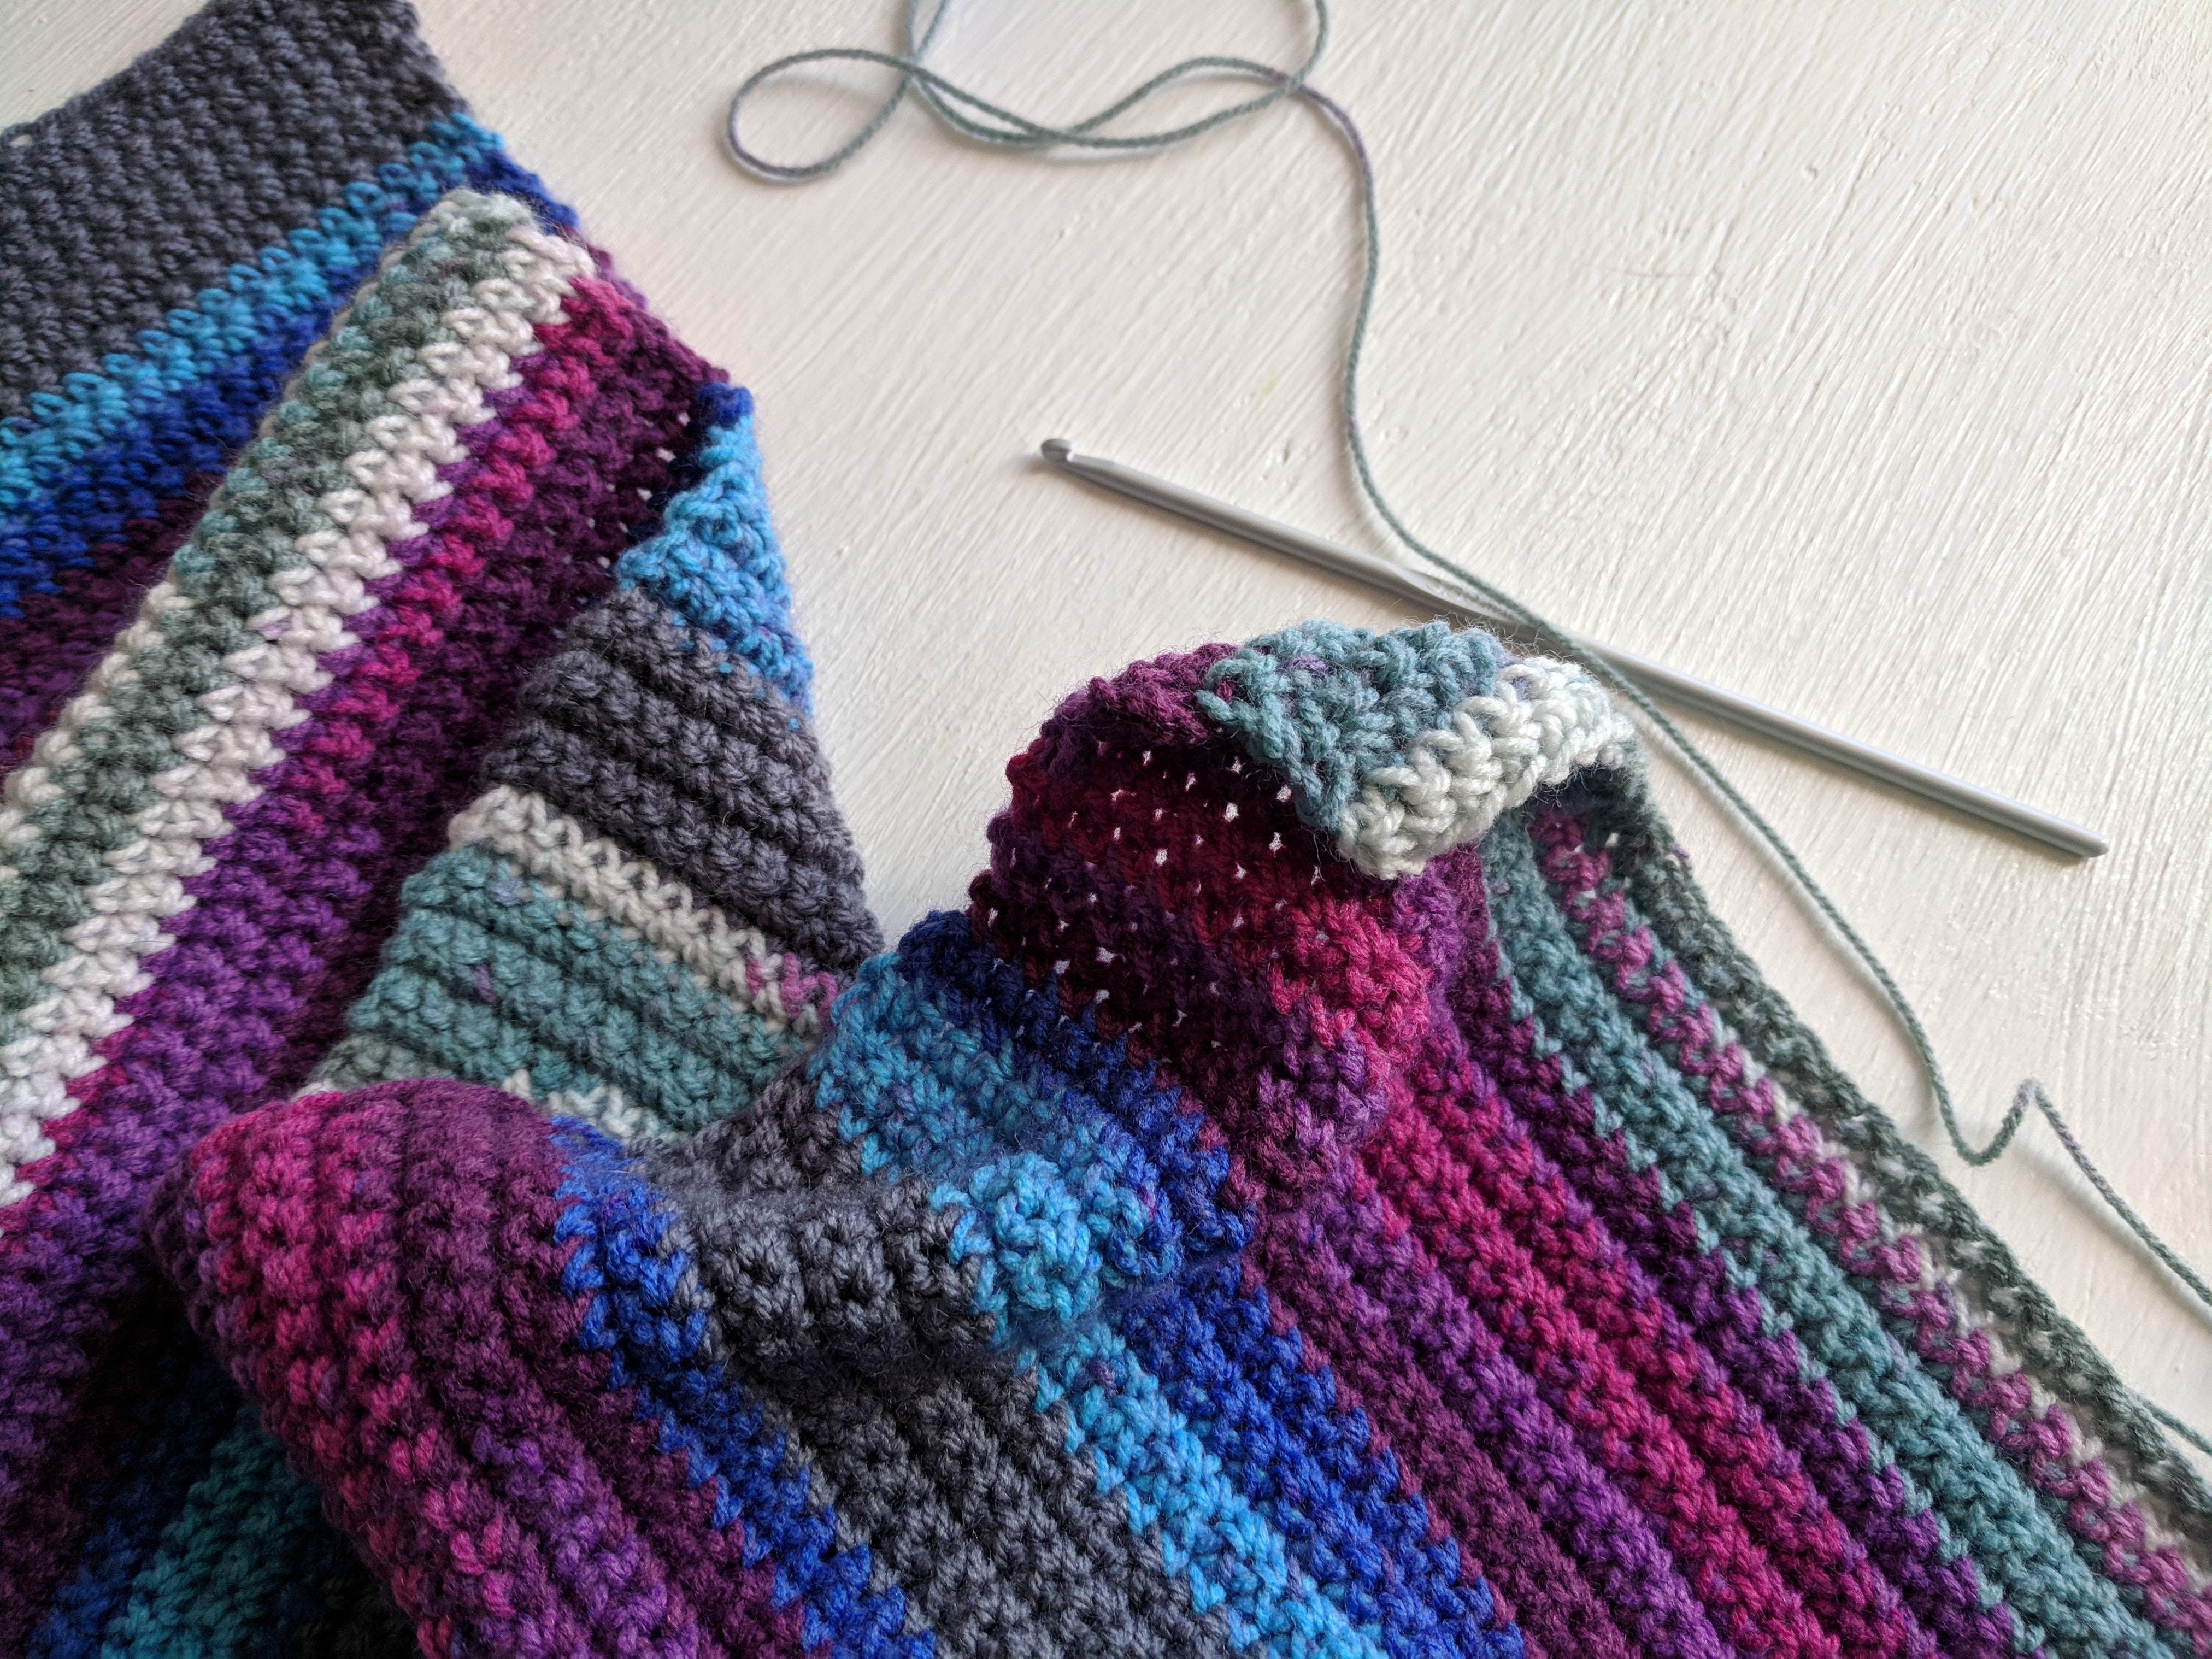 A striped crocheted blanket with crochet hook and string